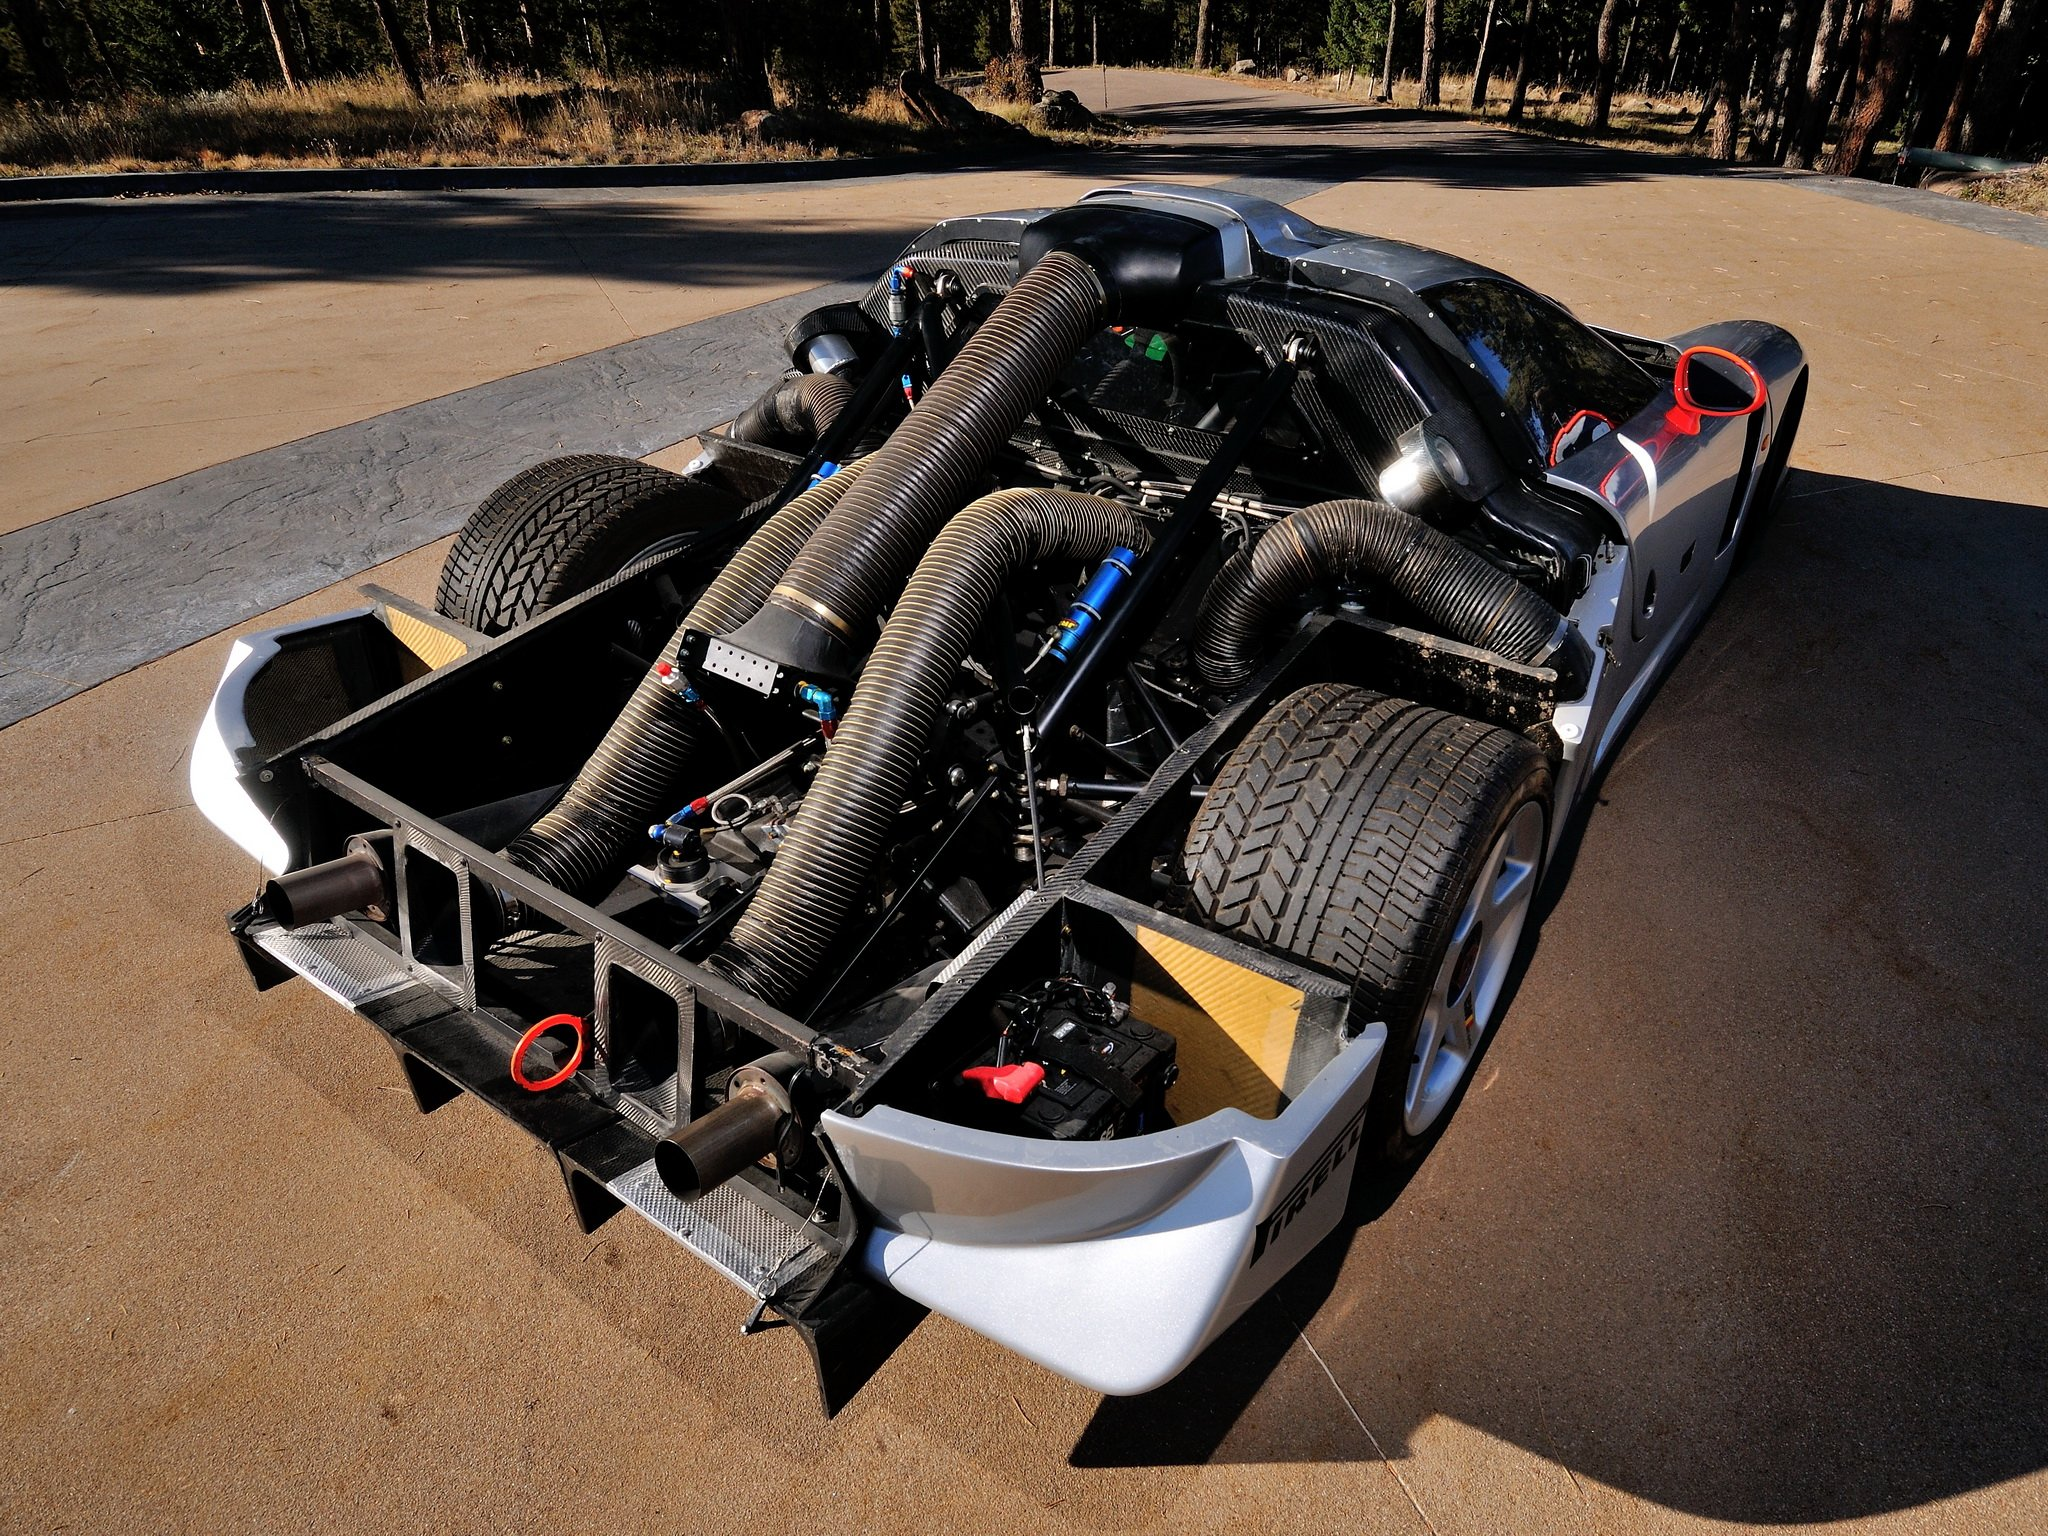 1997 Callaway C7r Gt1 Chevrolet Corvette Supercar Race HD Wallpapers Download free images and photos [musssic.tk]